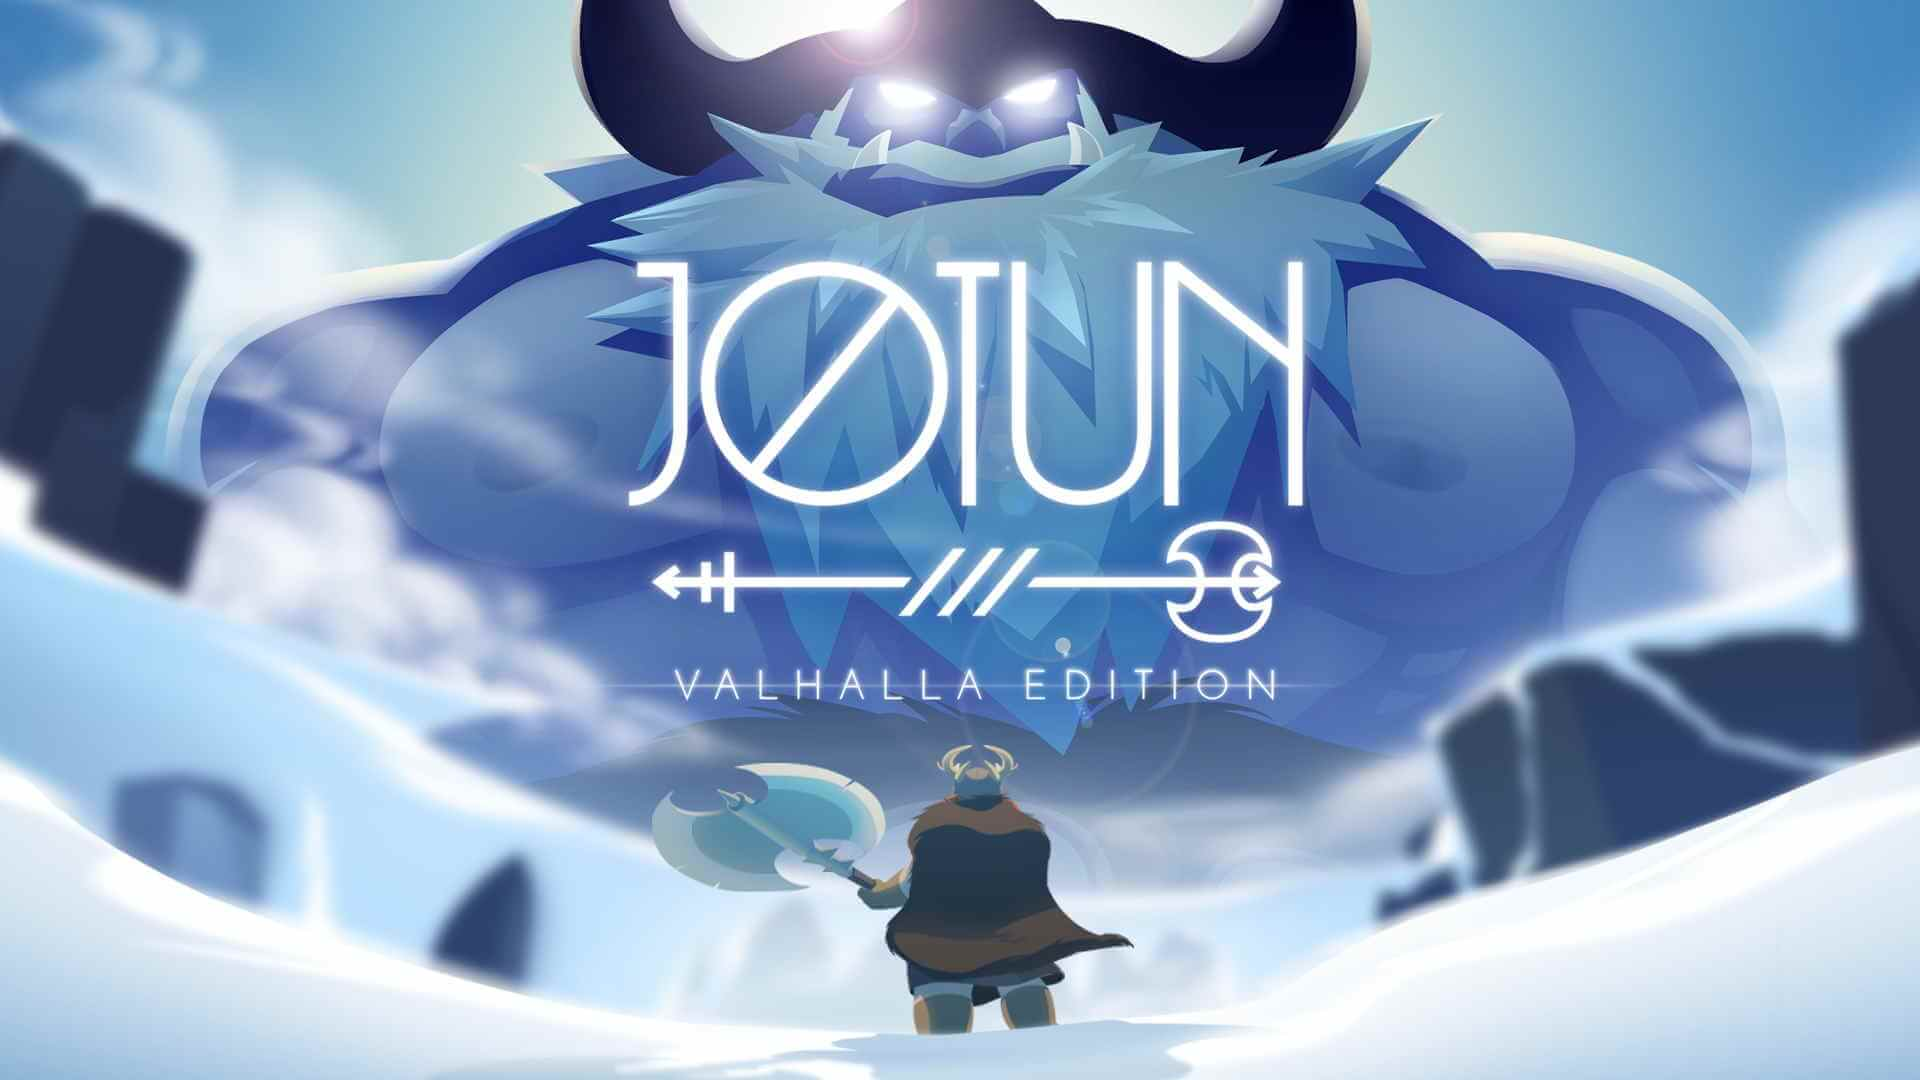 Jotun (Bildrechte Thunder Lutos Games)